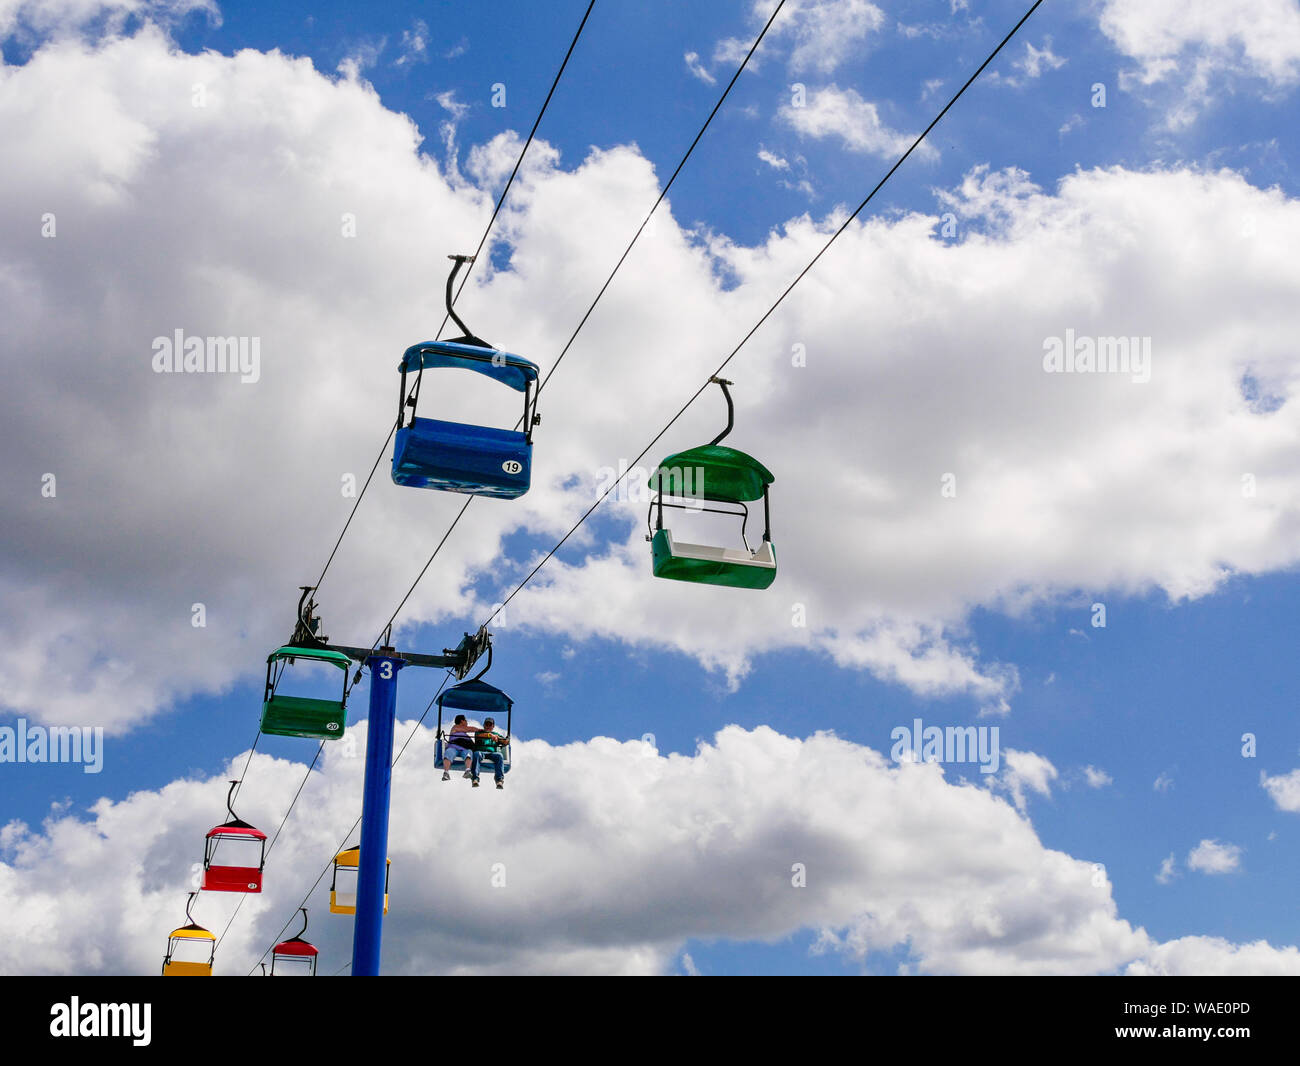 sky-glider-ride-at-the-illinois-state-fa